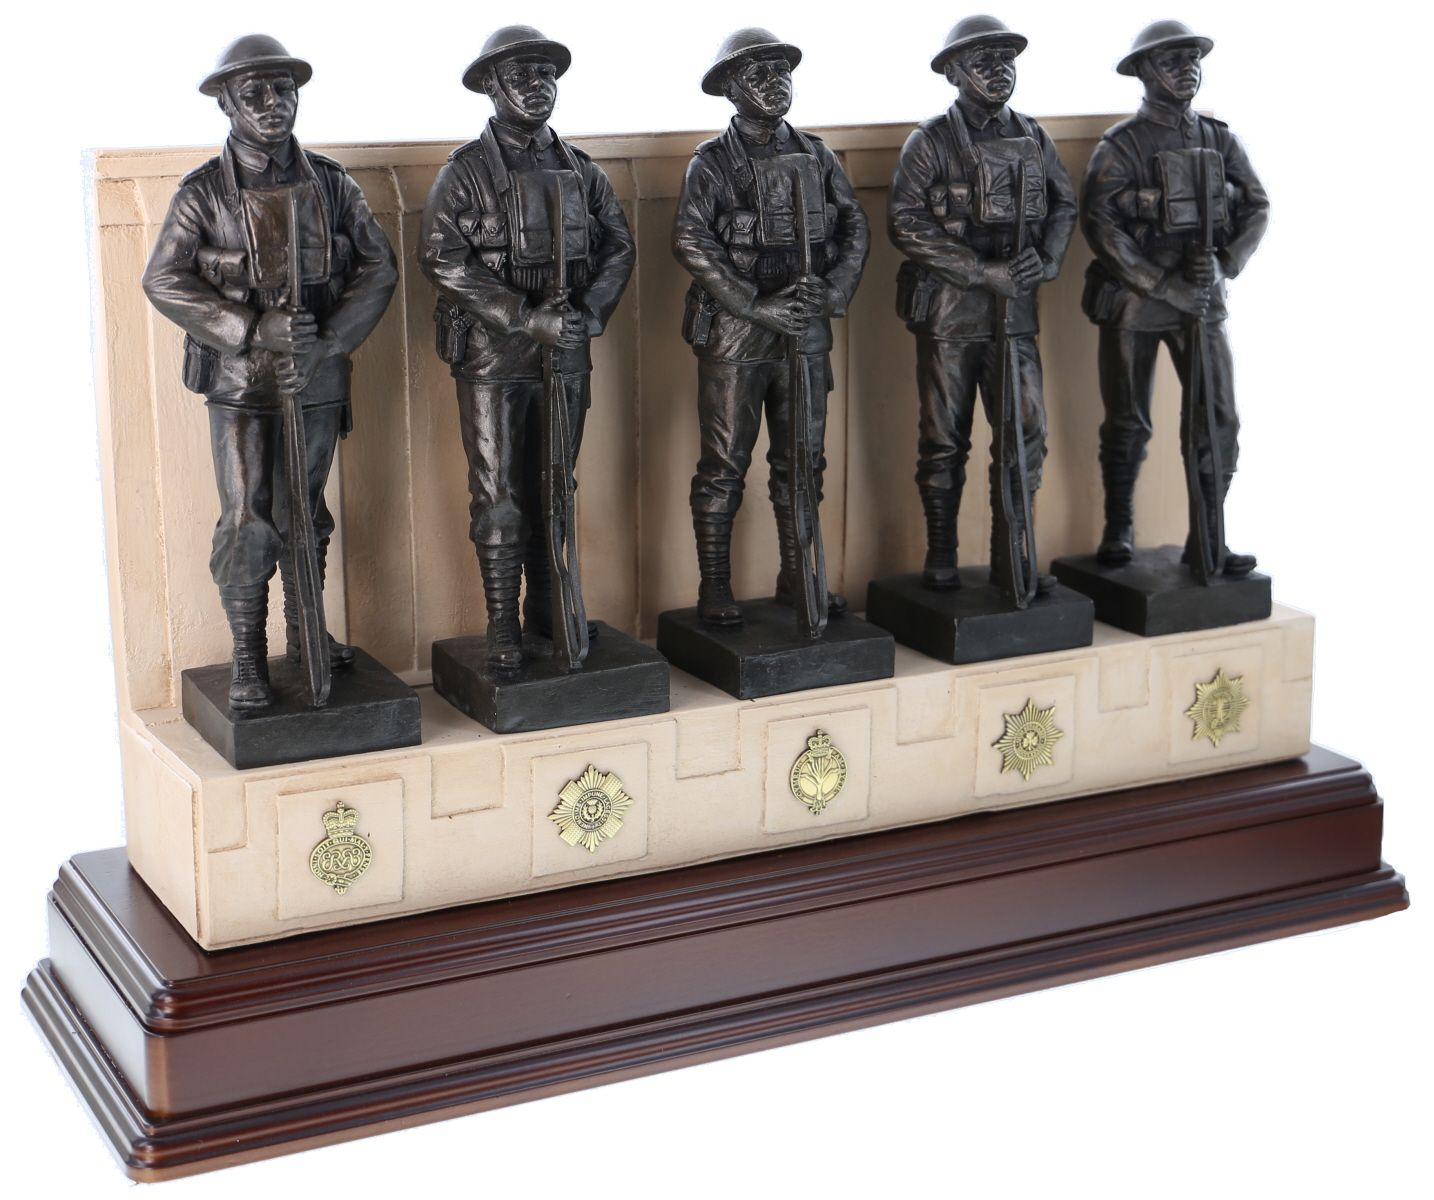 The Guards Memorial Statuette - An excellently sculptured statuette of the life-sized Guards' Memorial